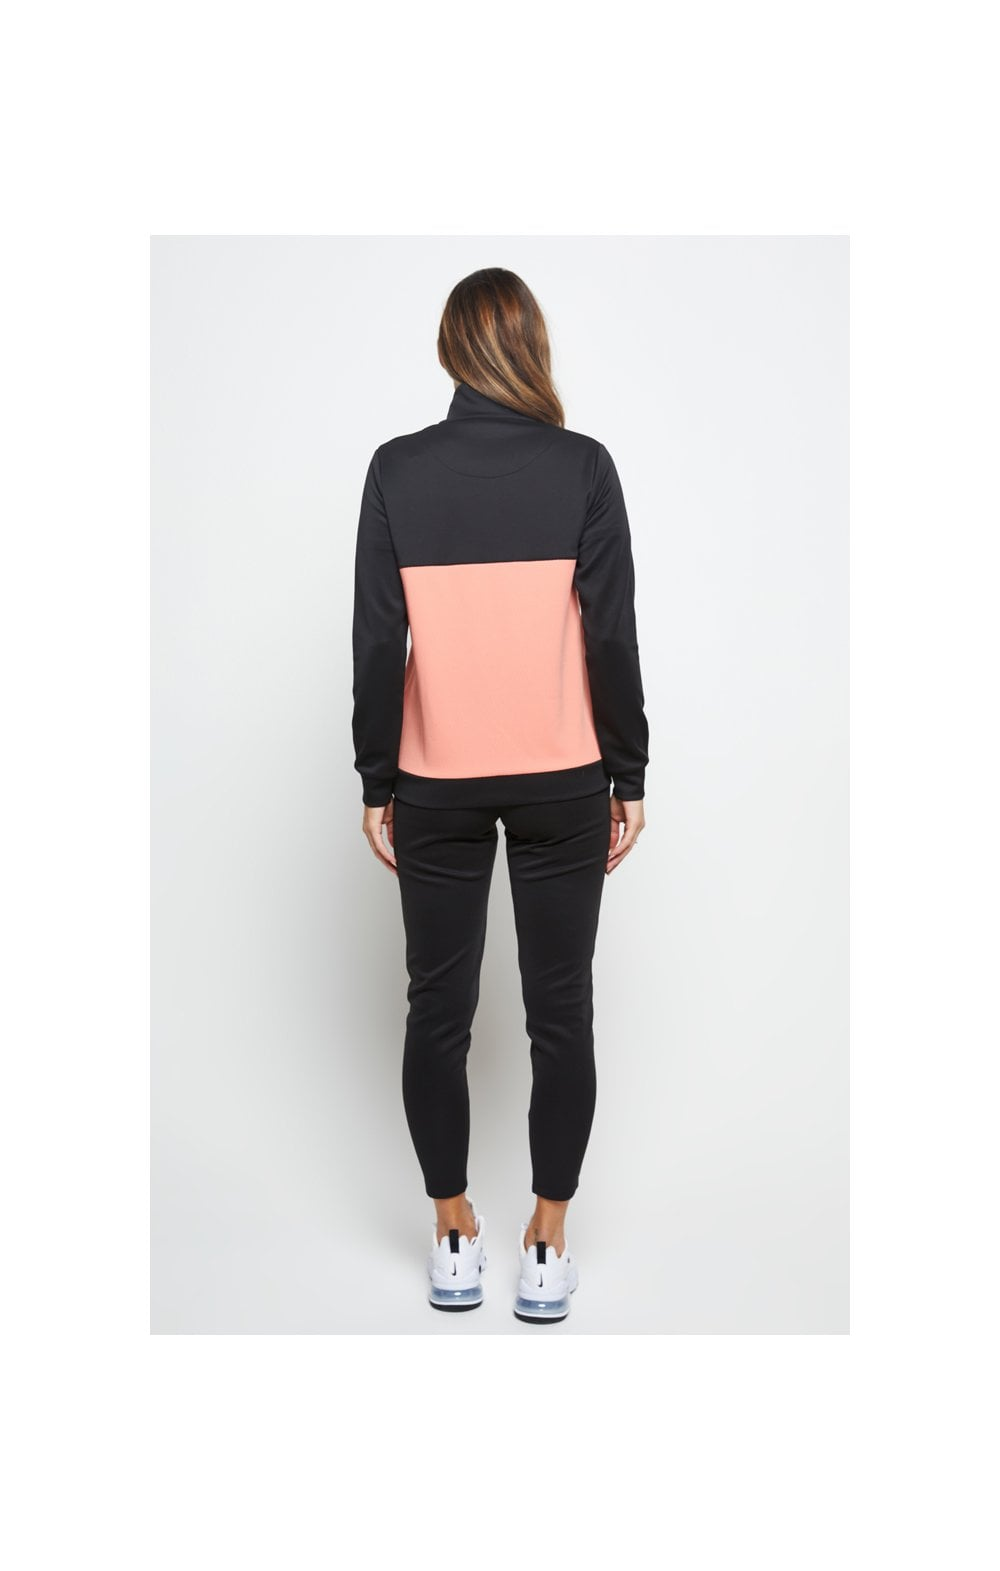 SikSilk Duality Quarter Zip Track Top - Black & Coral (6)